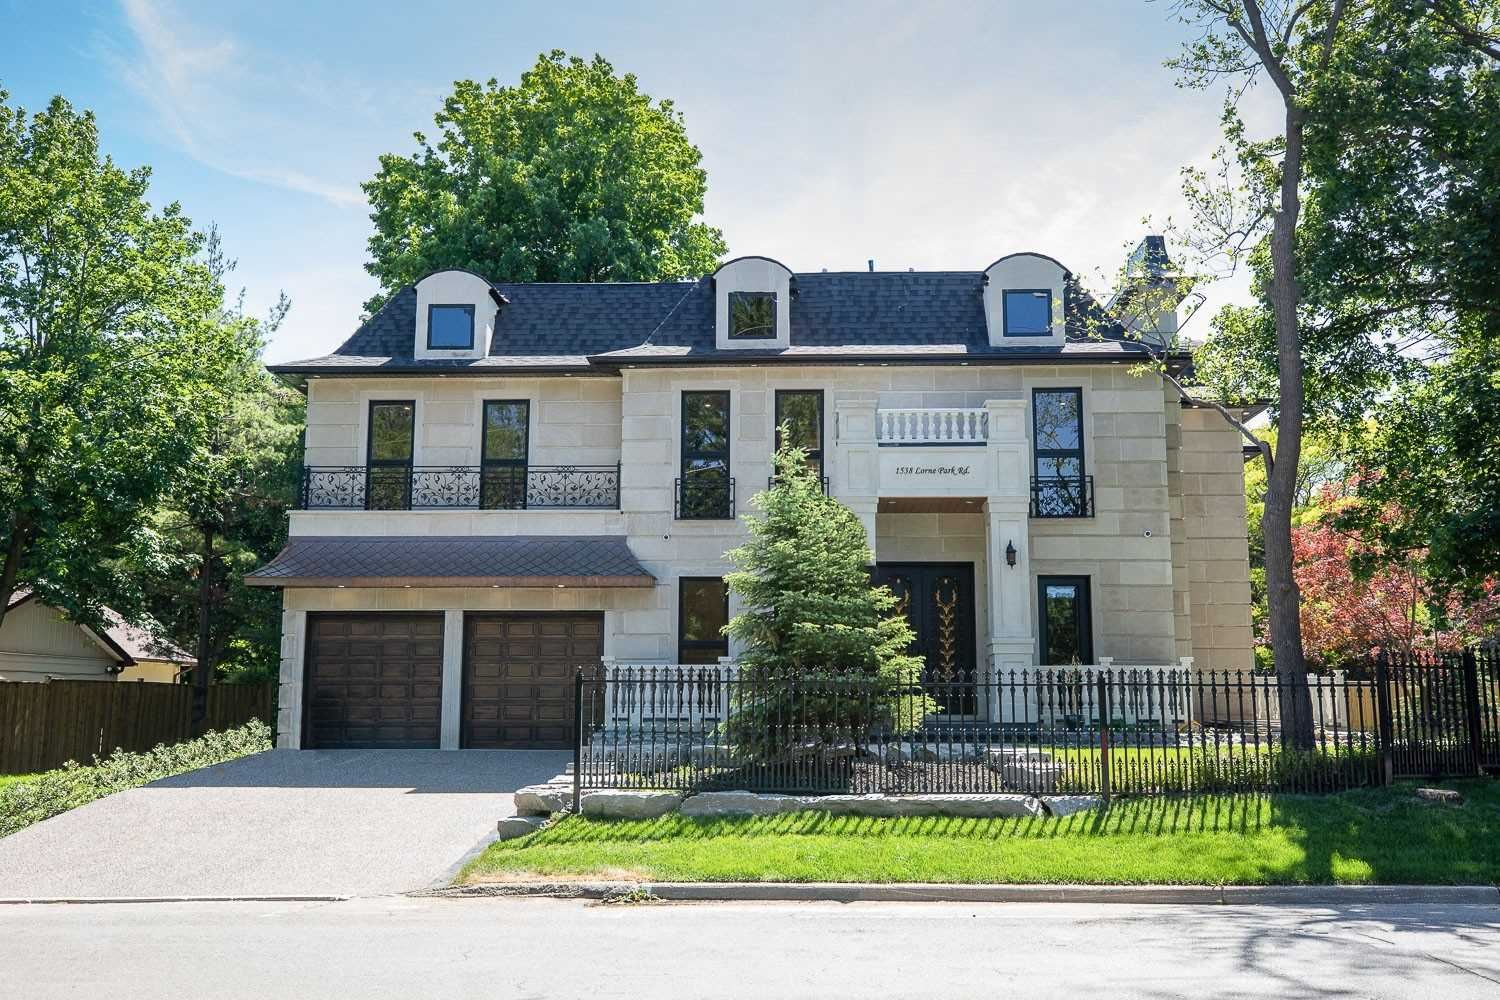 1374 Indian Rd, Mississauga, ON L5H1S4 - MLS#: W5379184